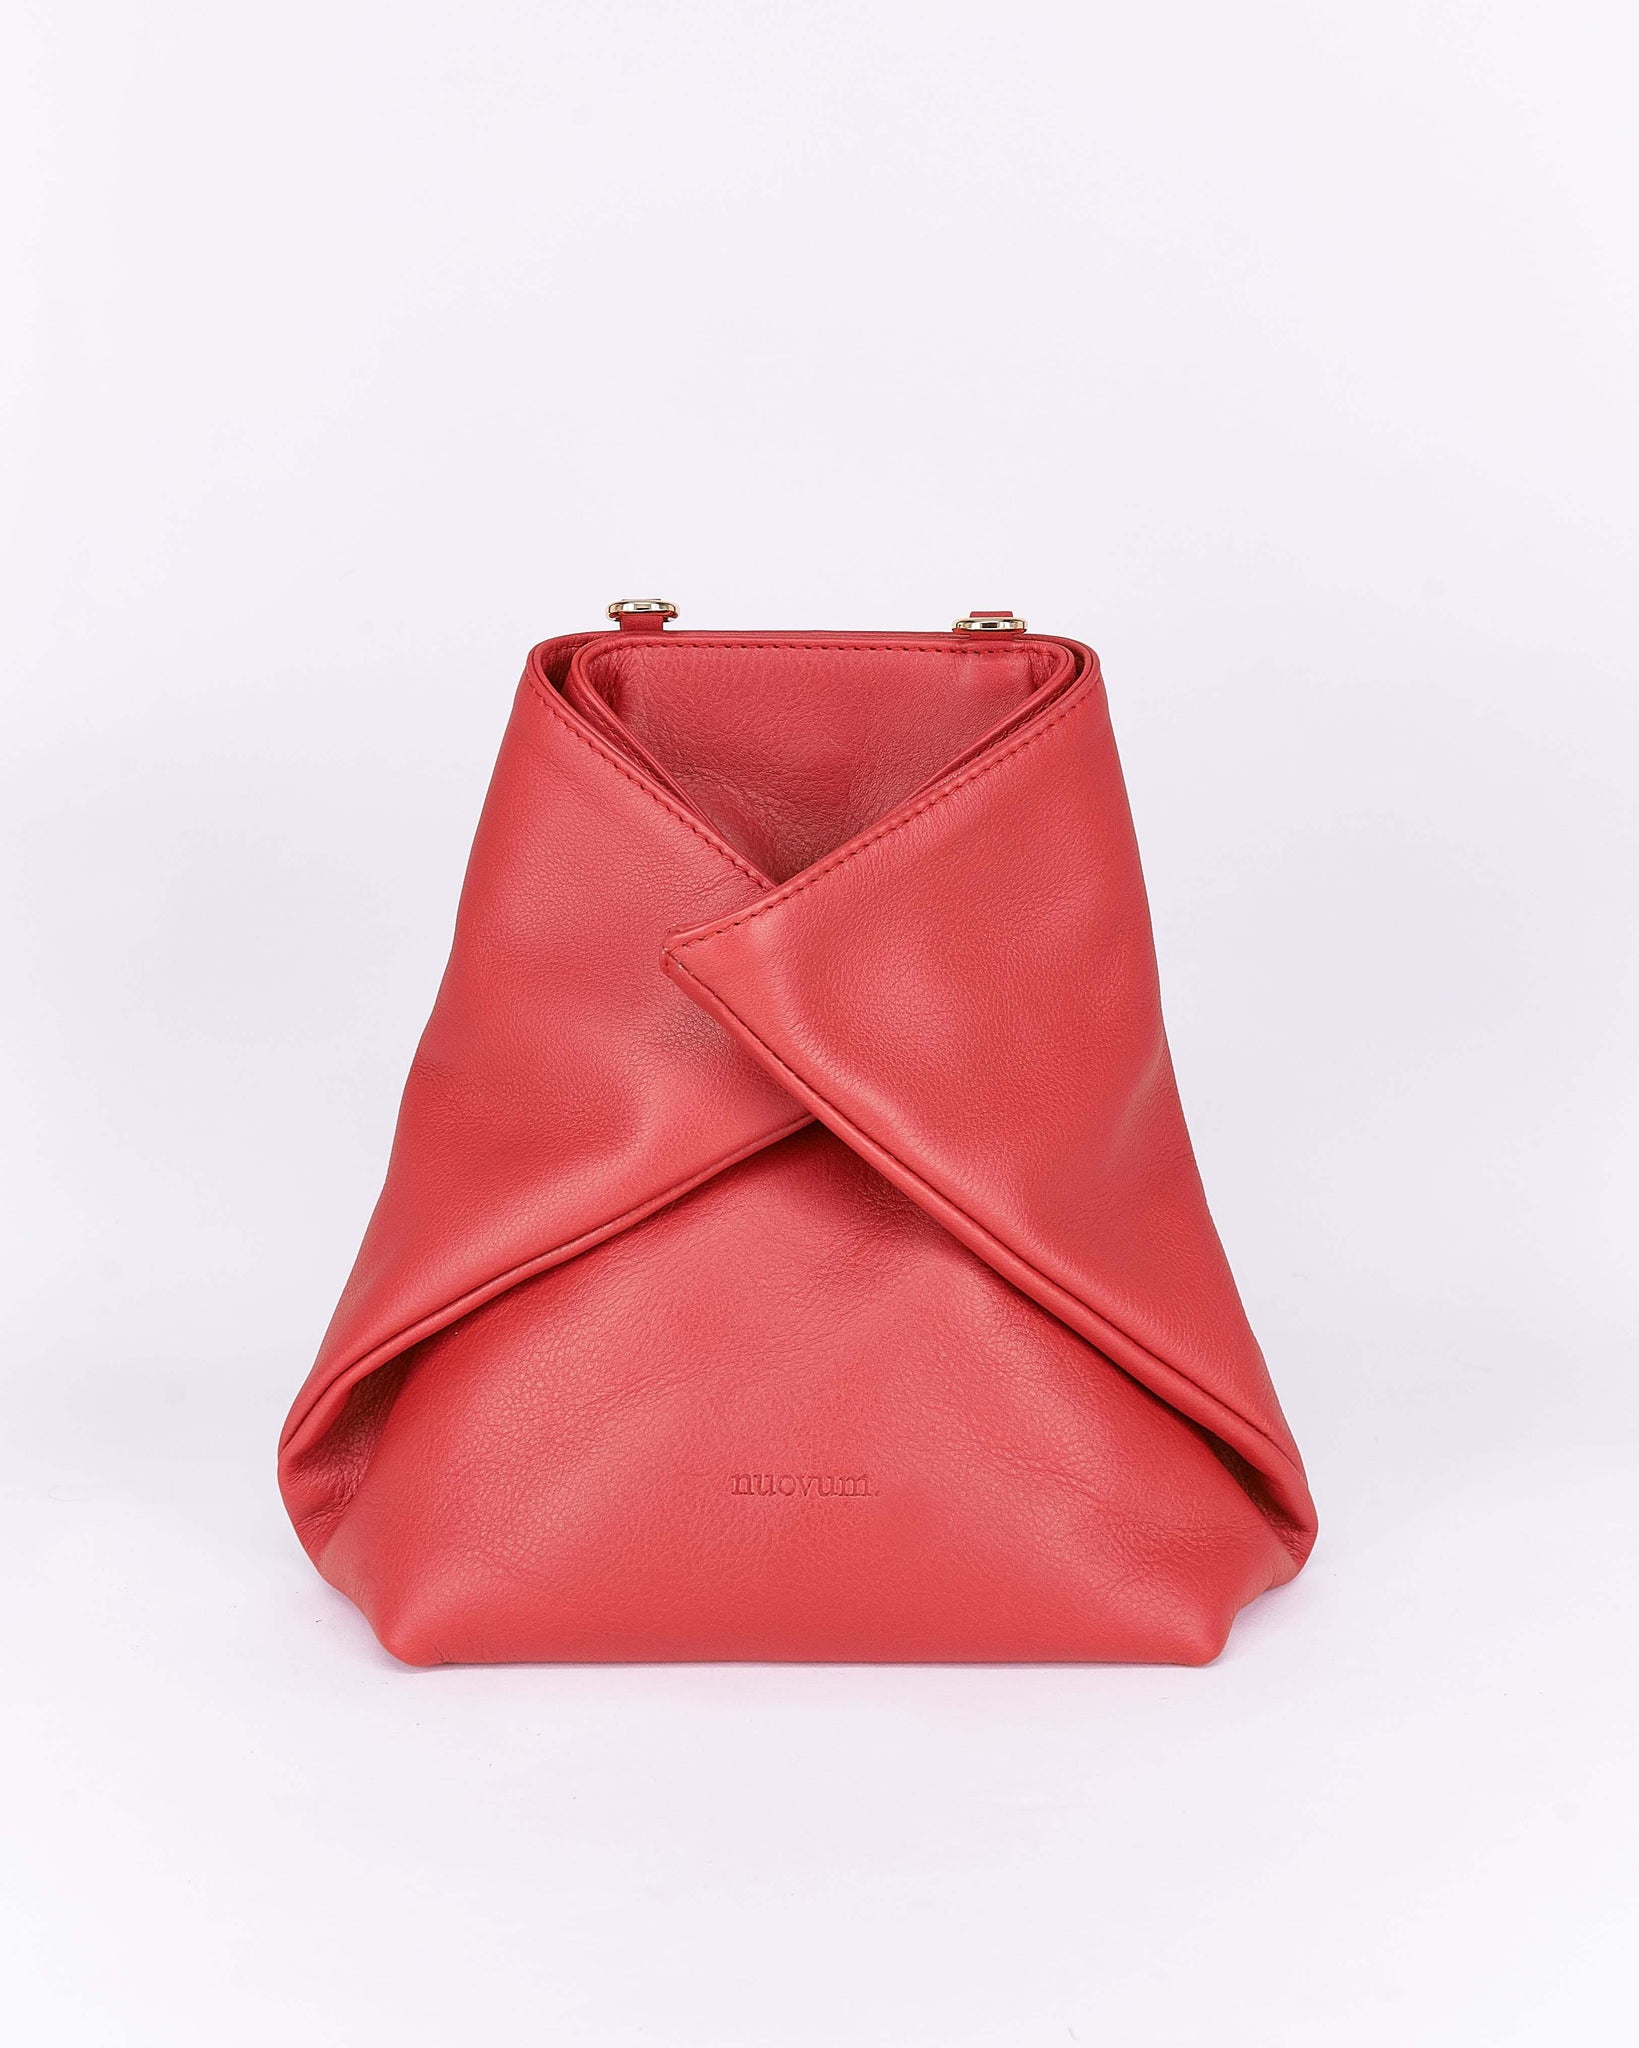 Bigcandy-Red-Front1-Leather-Bag-Nuovum-Localdesigners-Handmade-Madeinbarcelona